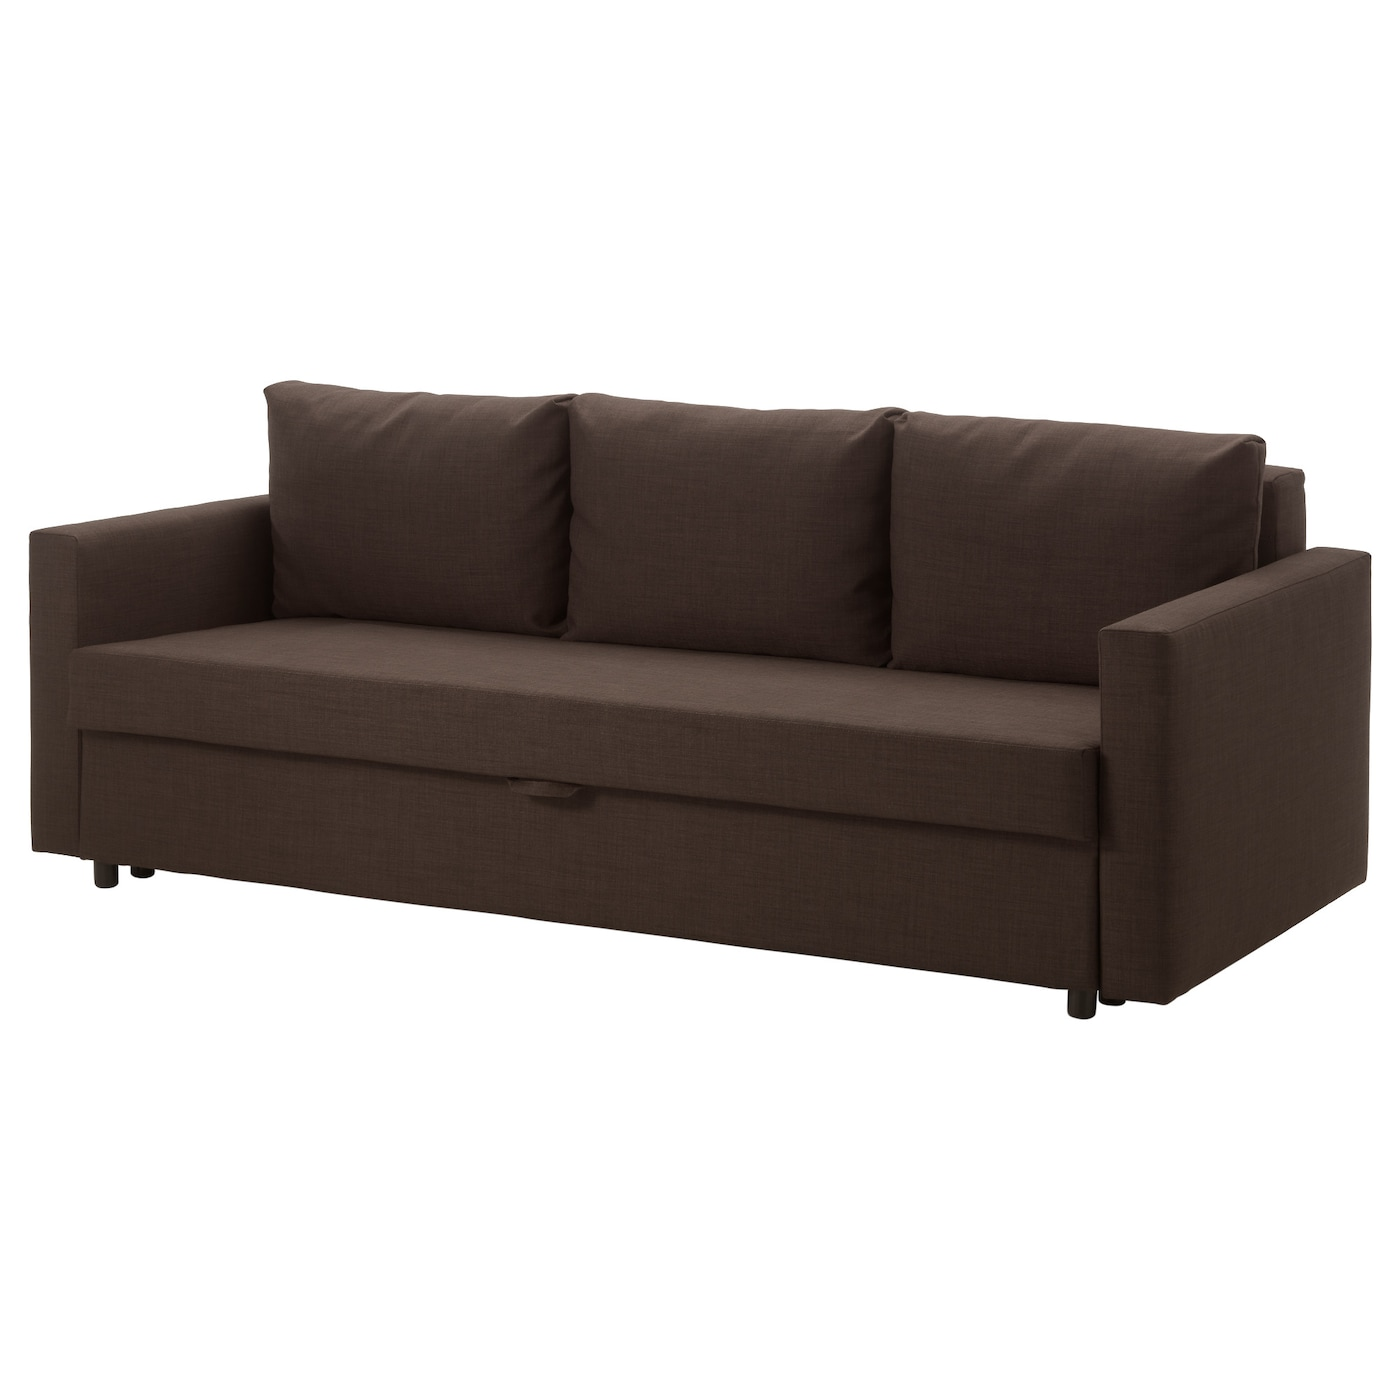 Friheten three seat sofa bed skiftebo brown ikea for Sofa cama clic clac ikea